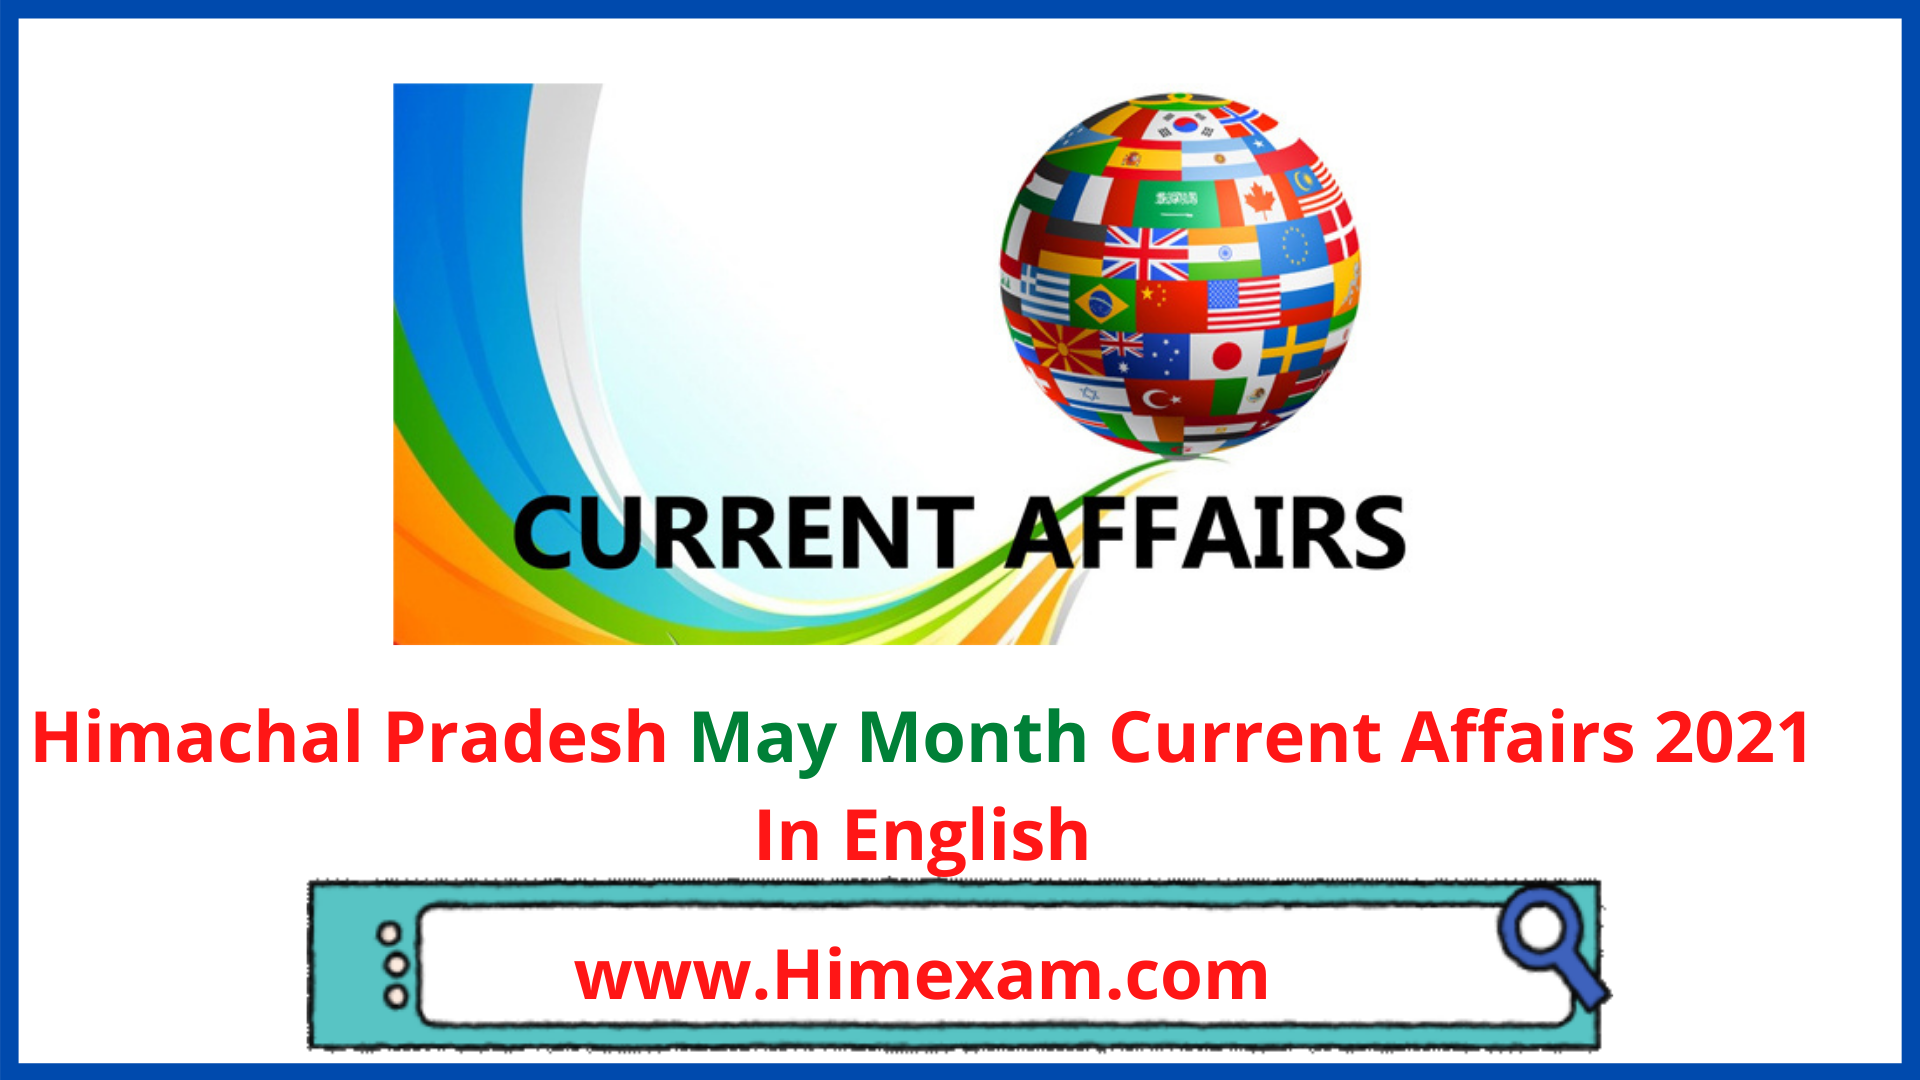 Himachal Pradesh May Month Current Affairs 2021 In English